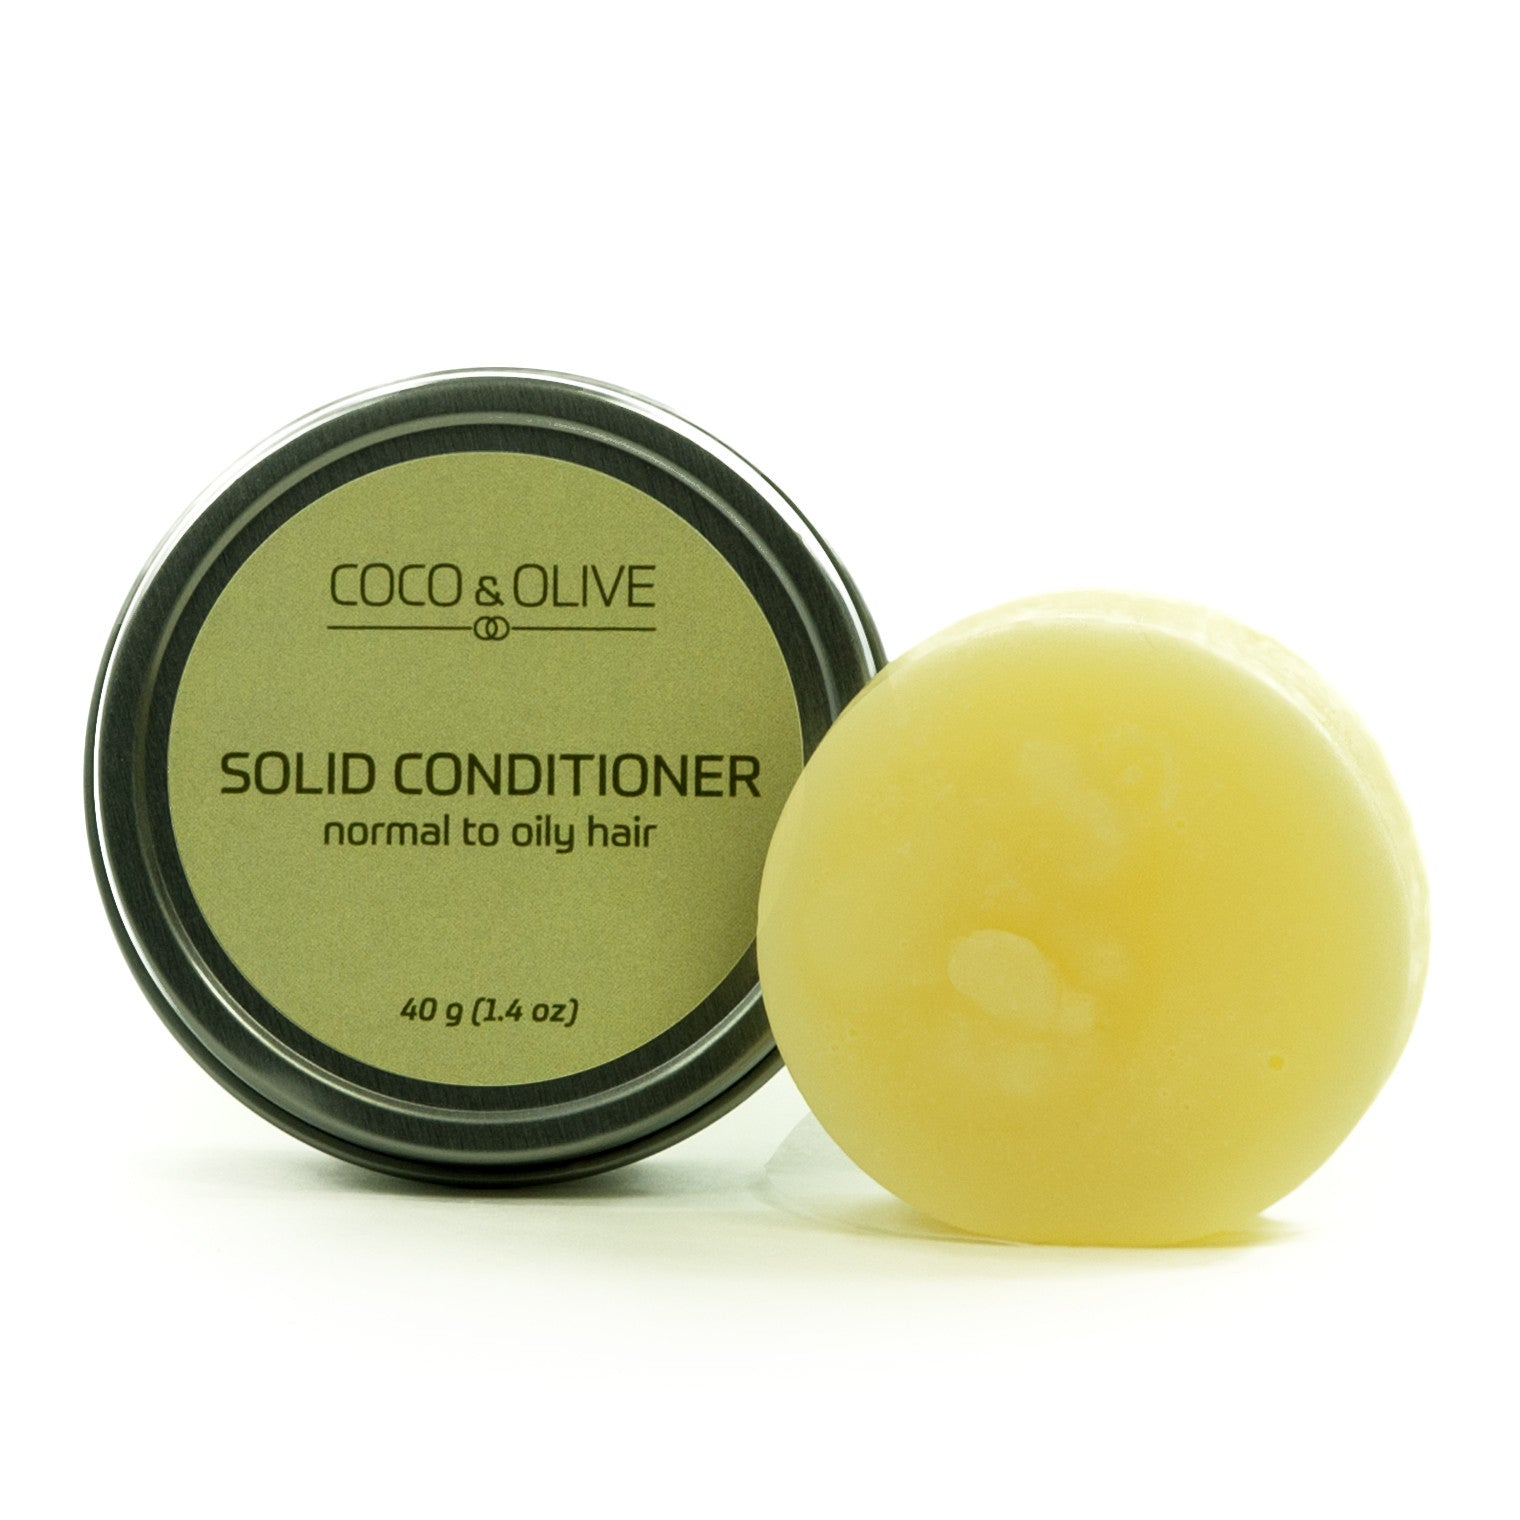 Coco & Olive Solid Conditioner Normal to Dry hair. This bar gives your hair enough moisture without leaving it limp and lifeless.